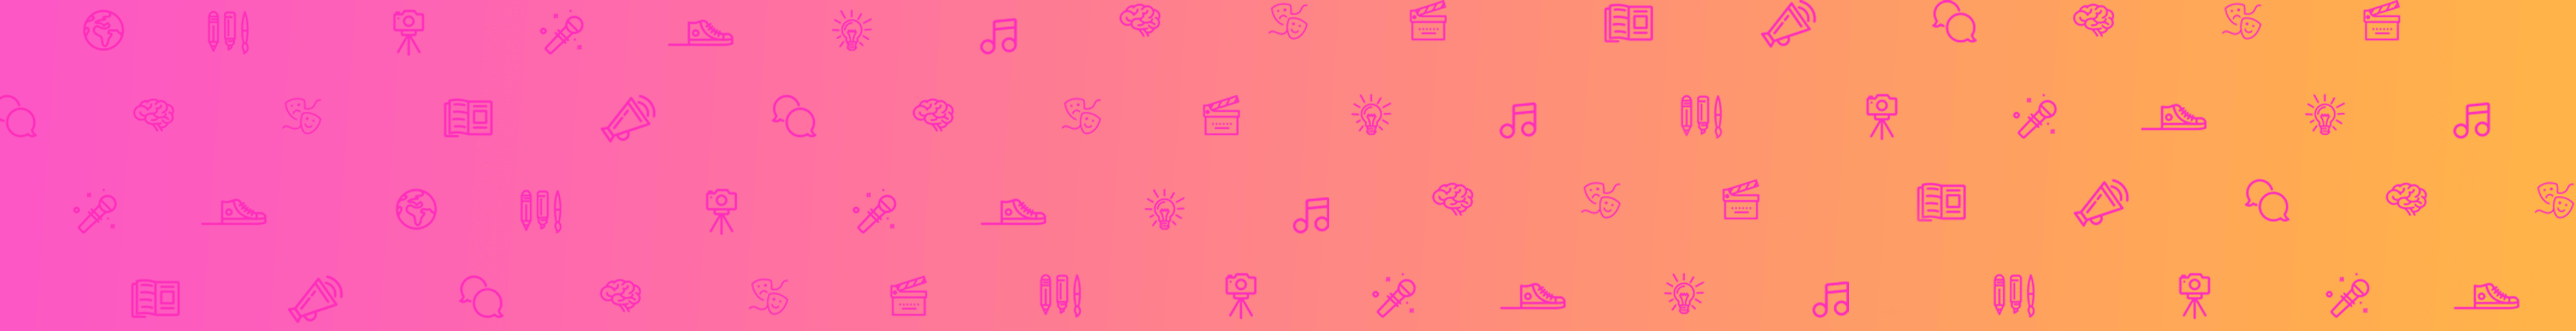 icons_slimheight-background_coral